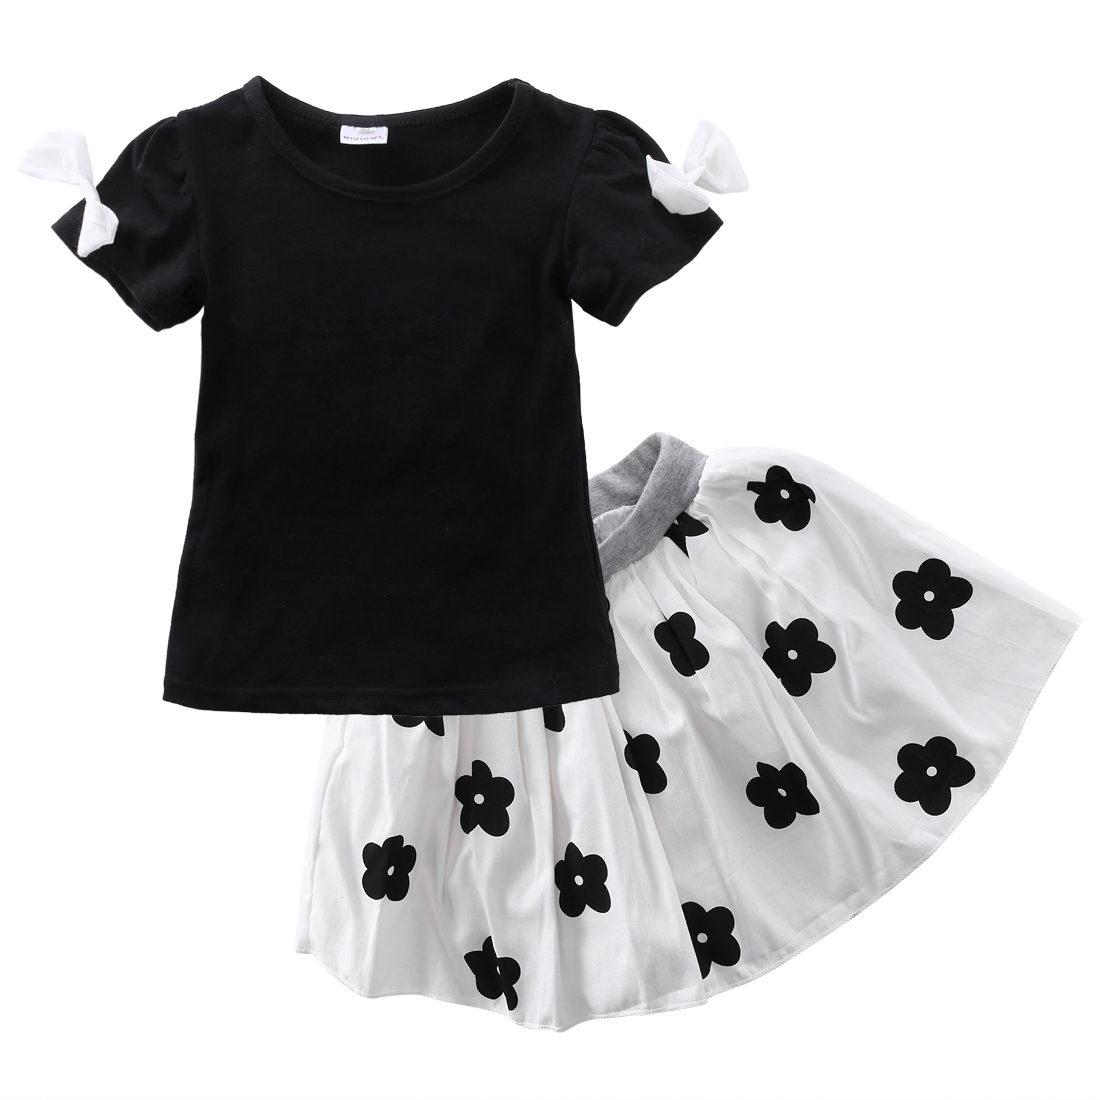 2pcs Kids Baby Girls Clothes sets Short sleeve T-shirt Tops+Tutu Skirts Suits Kids girls cute cotton summer Outfits HOT Sales 2016 new fashion boutique outfits for omika baby girls sets with 2 pcs cute print long sleeve tops bow tutu skirts size 4 12y